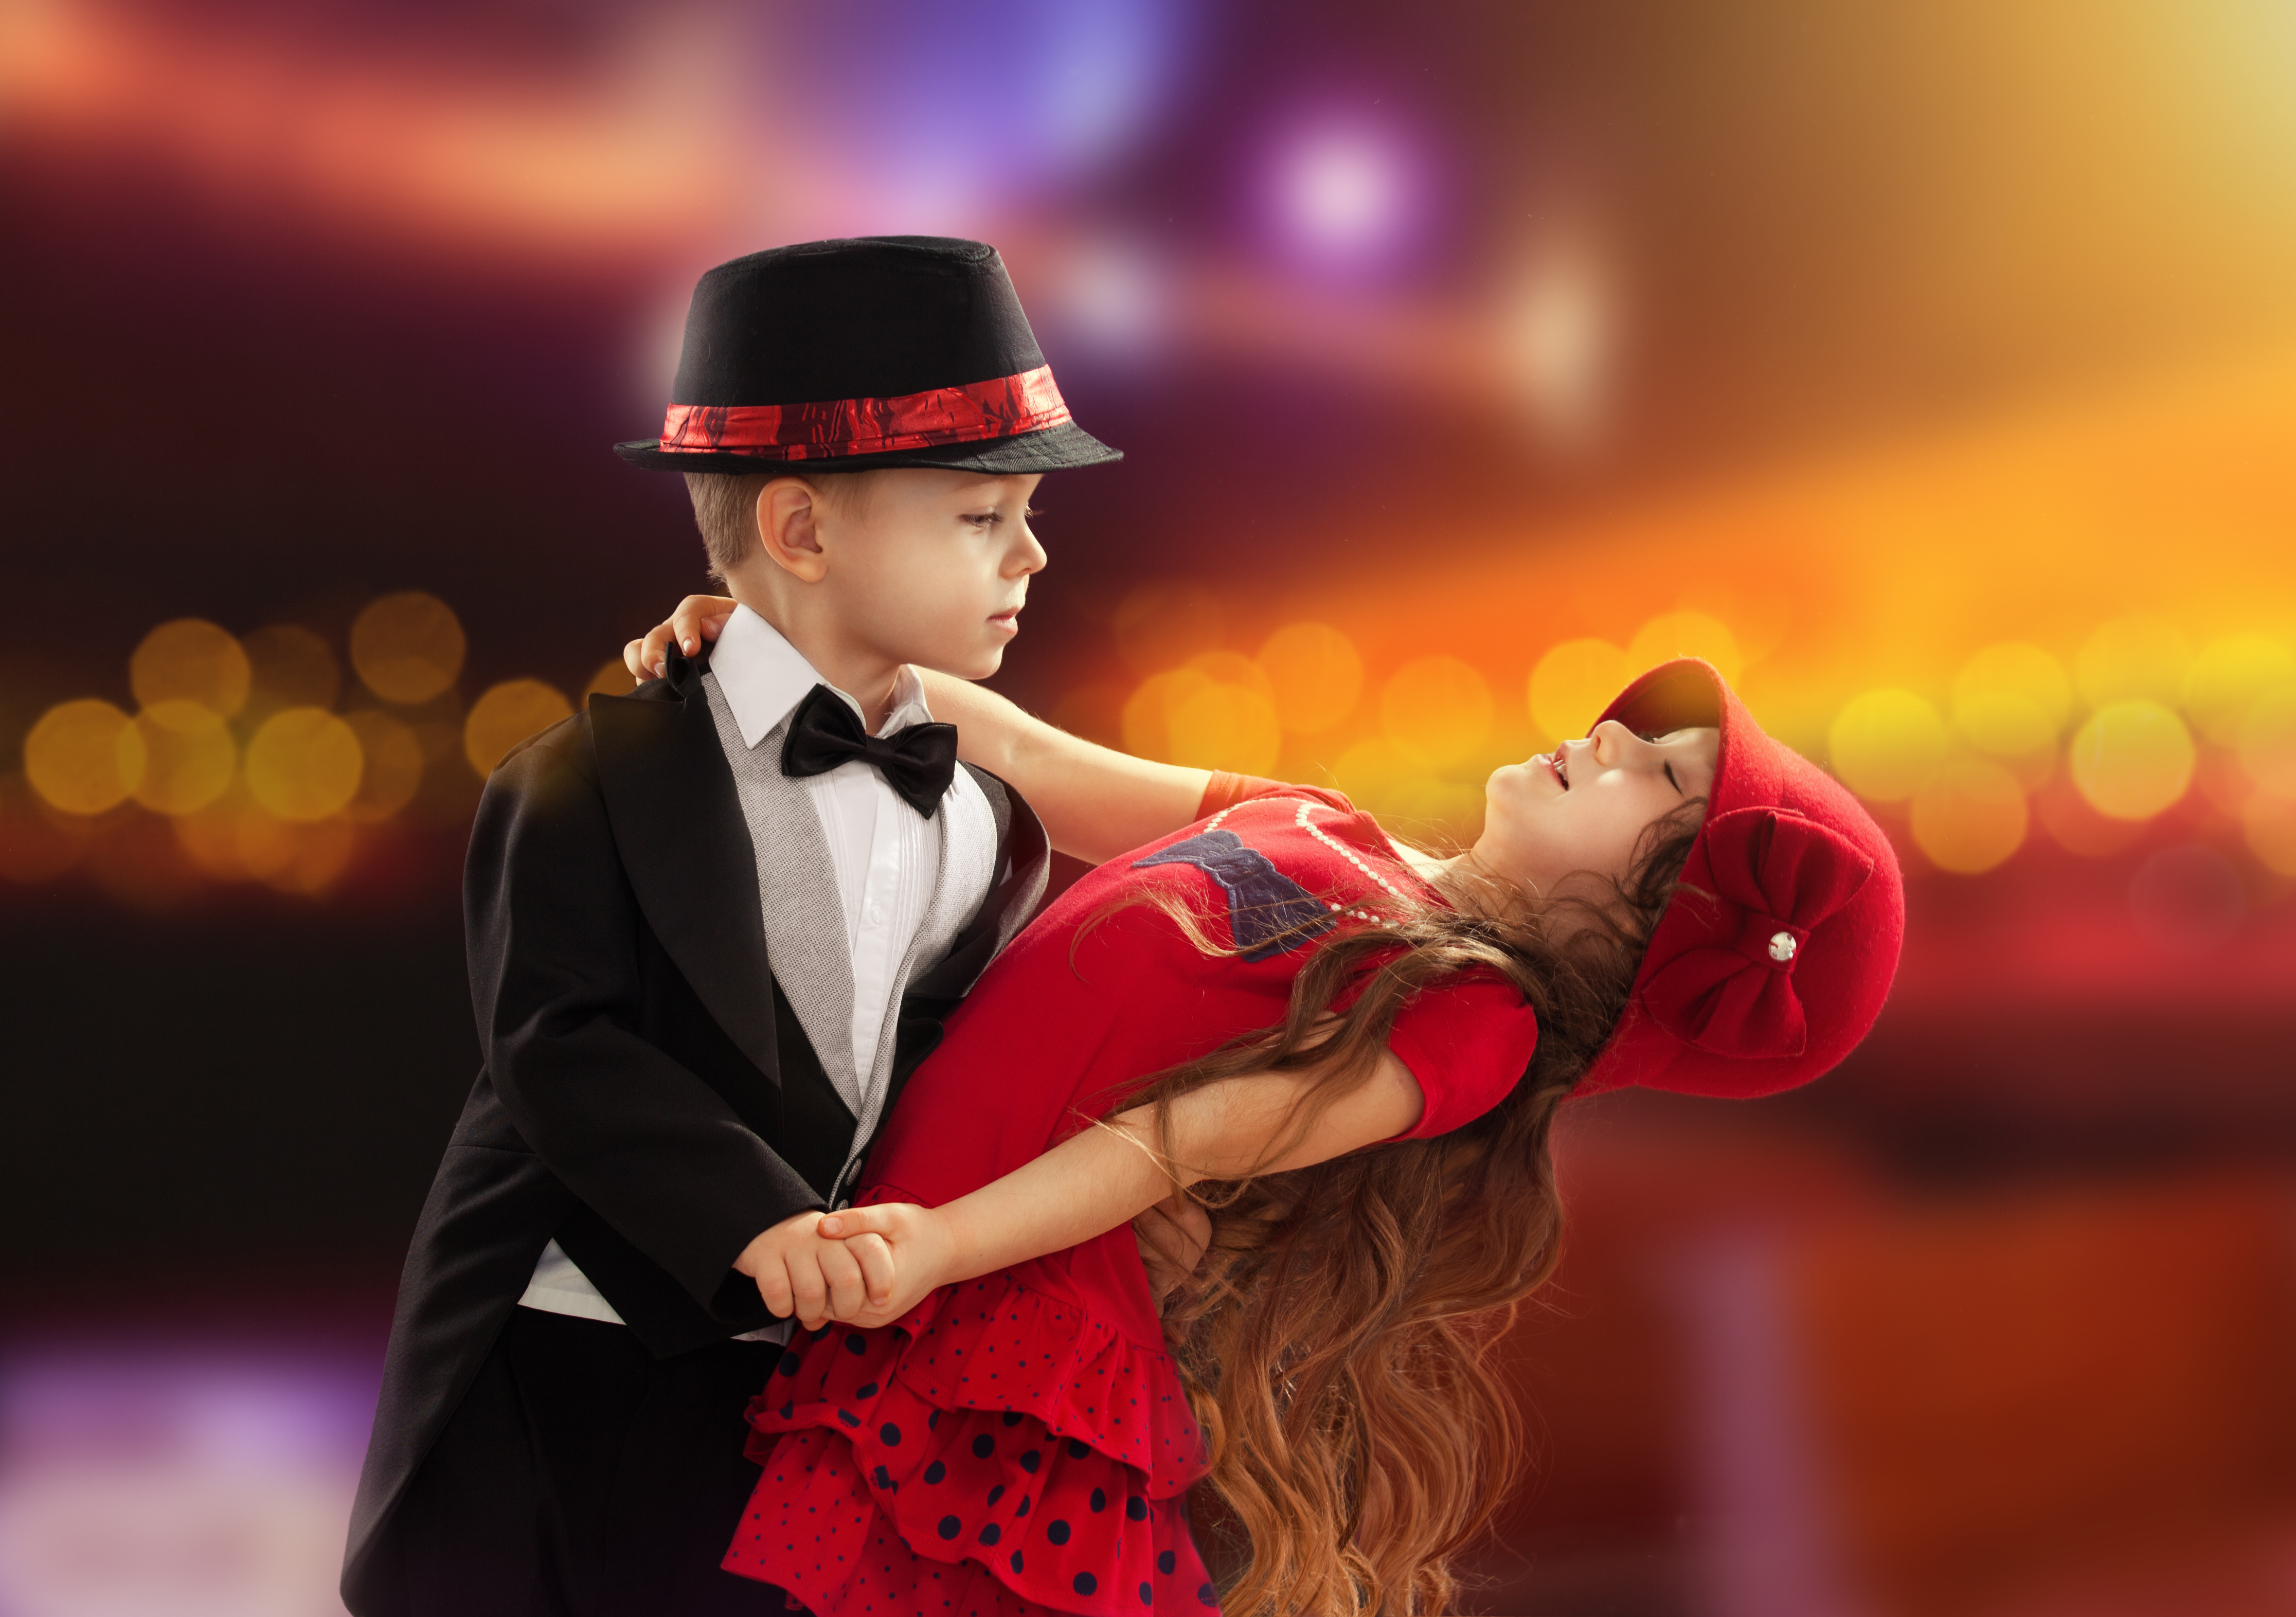 a young boy and girl ballroom dancing in fancy clothing